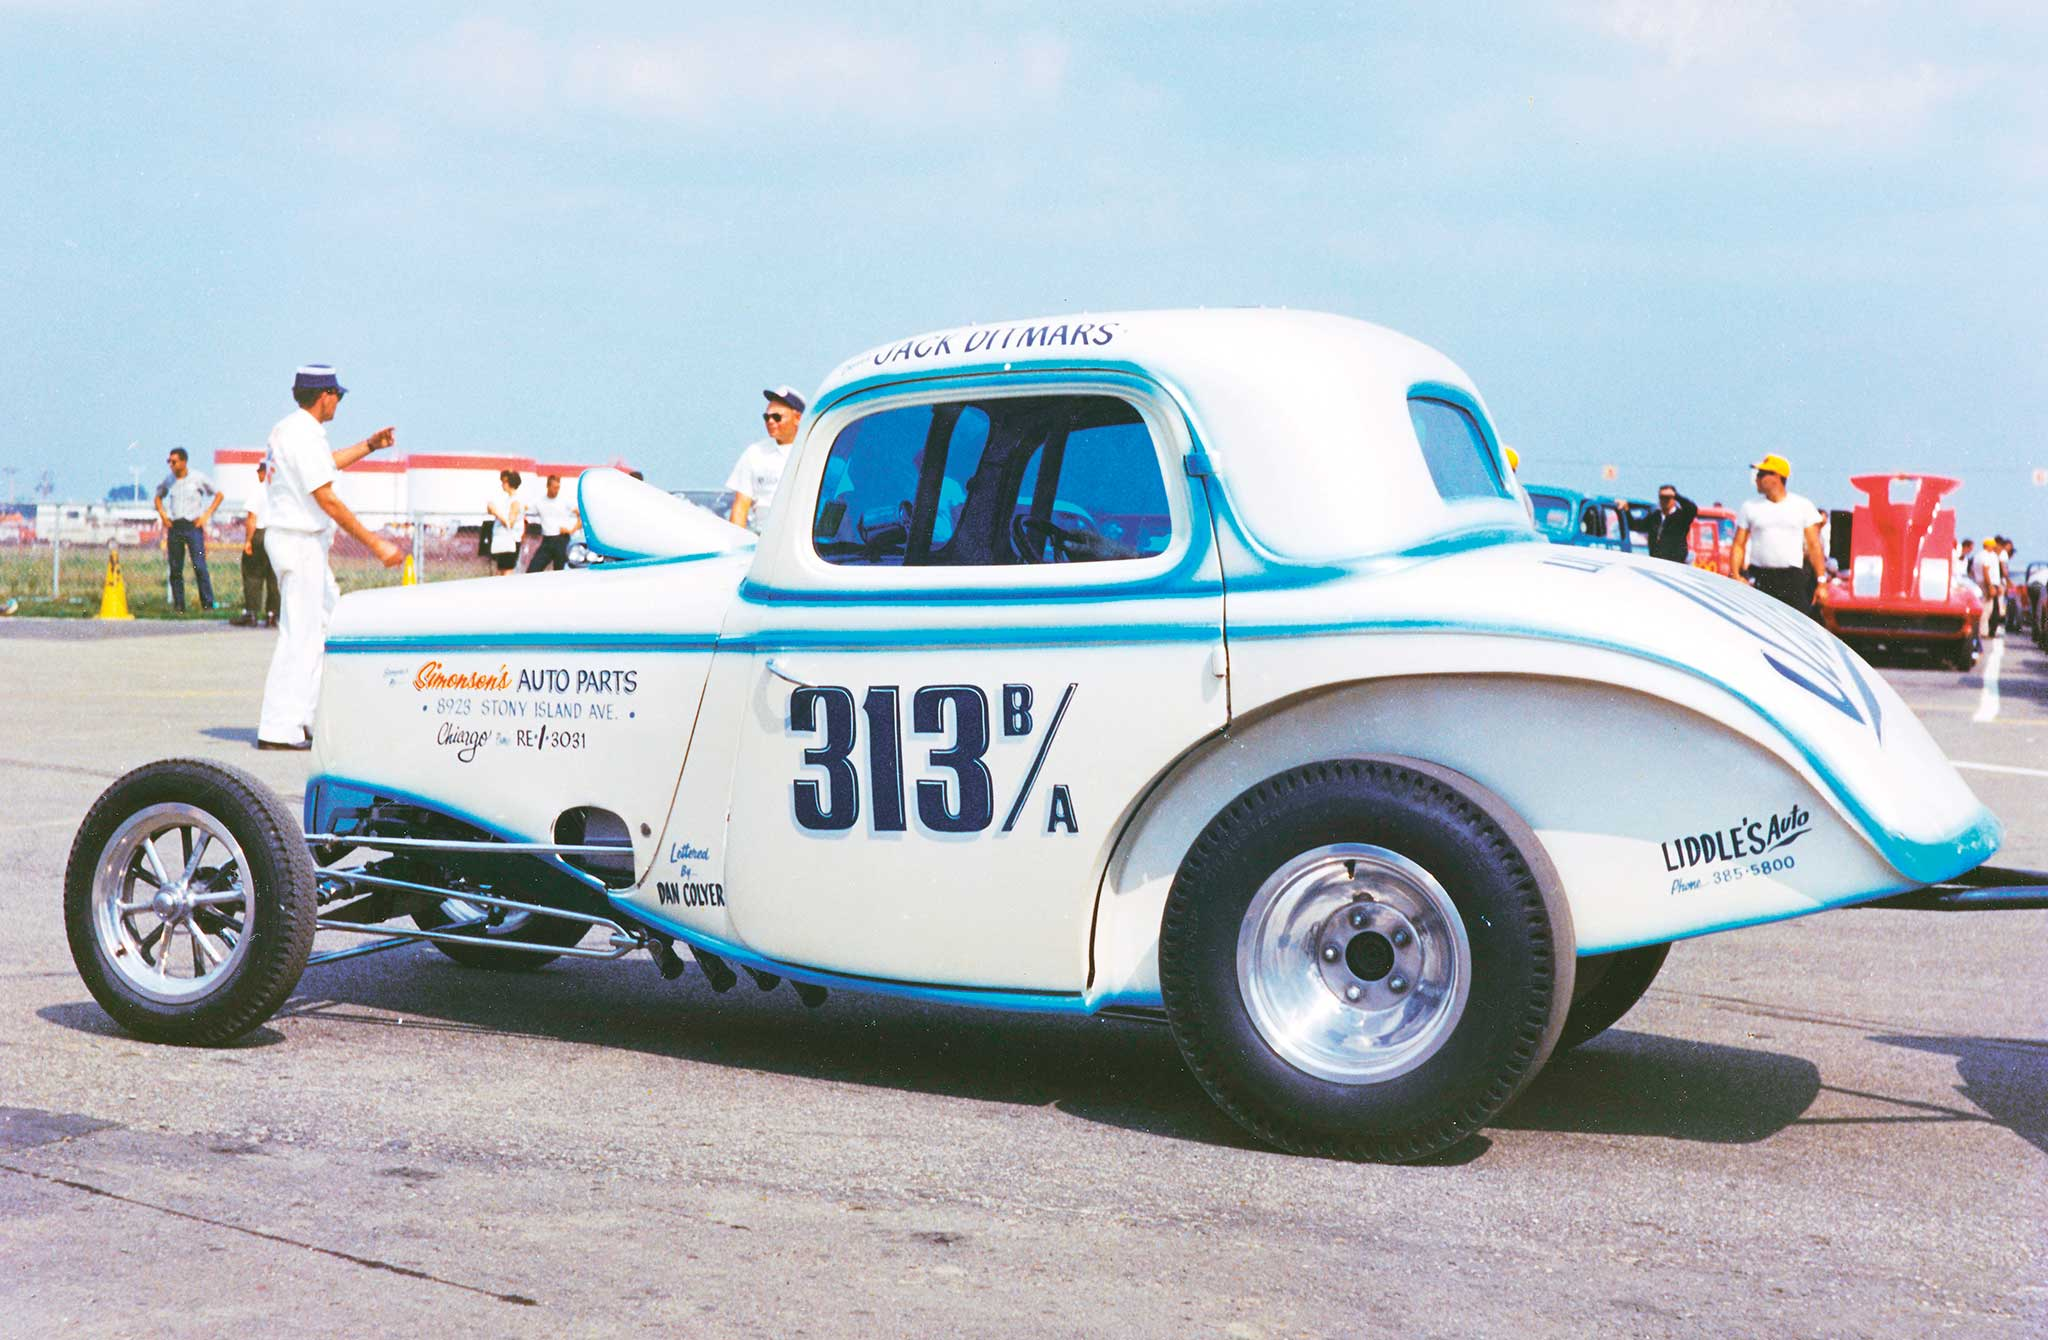 Chicago's Jack Ditmars' heavily modified 1934 Ford was a popular Comp Eliminator racer. Ditmars was noted for wild wheelstands as he rowed through the four-speed. He gained further fame with Der Mini Brute, a normally aspirated, Chevy-powered Opel alcohol Funny Car.